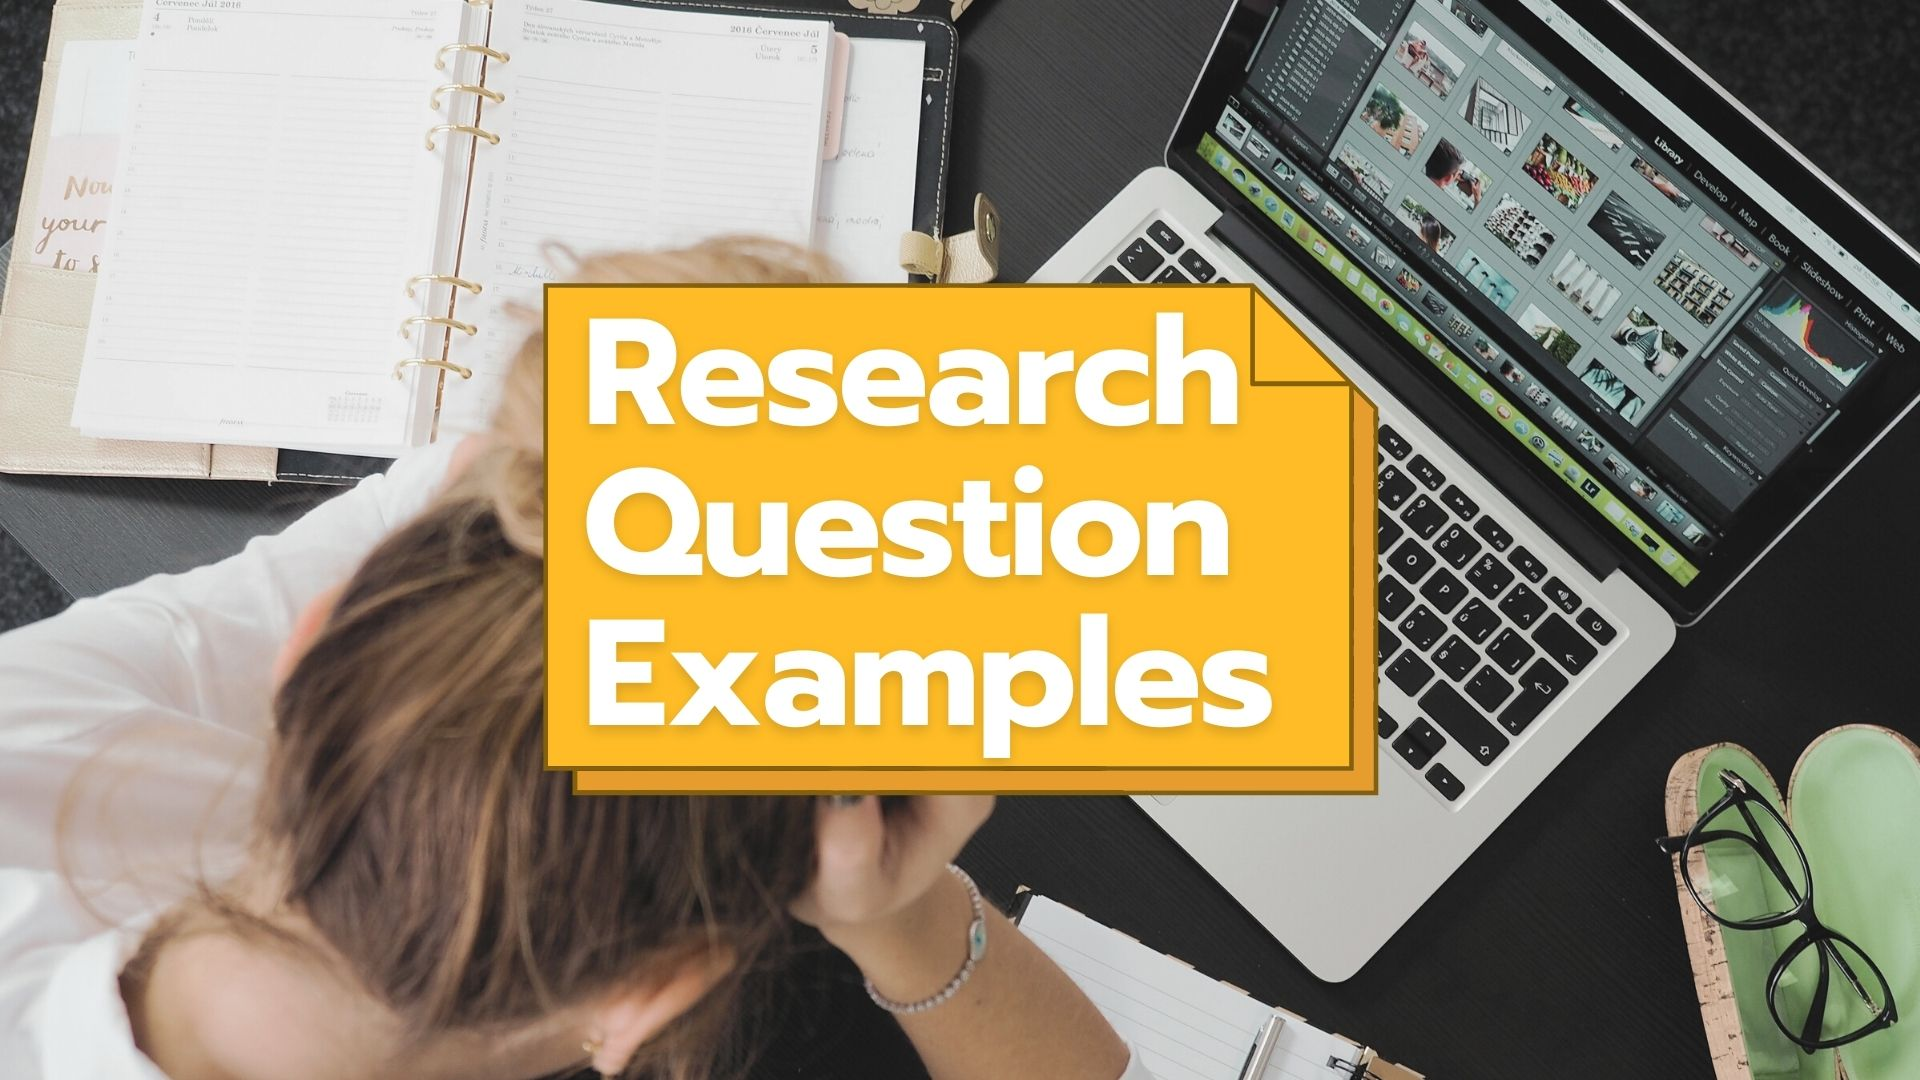 Research Questions Examples